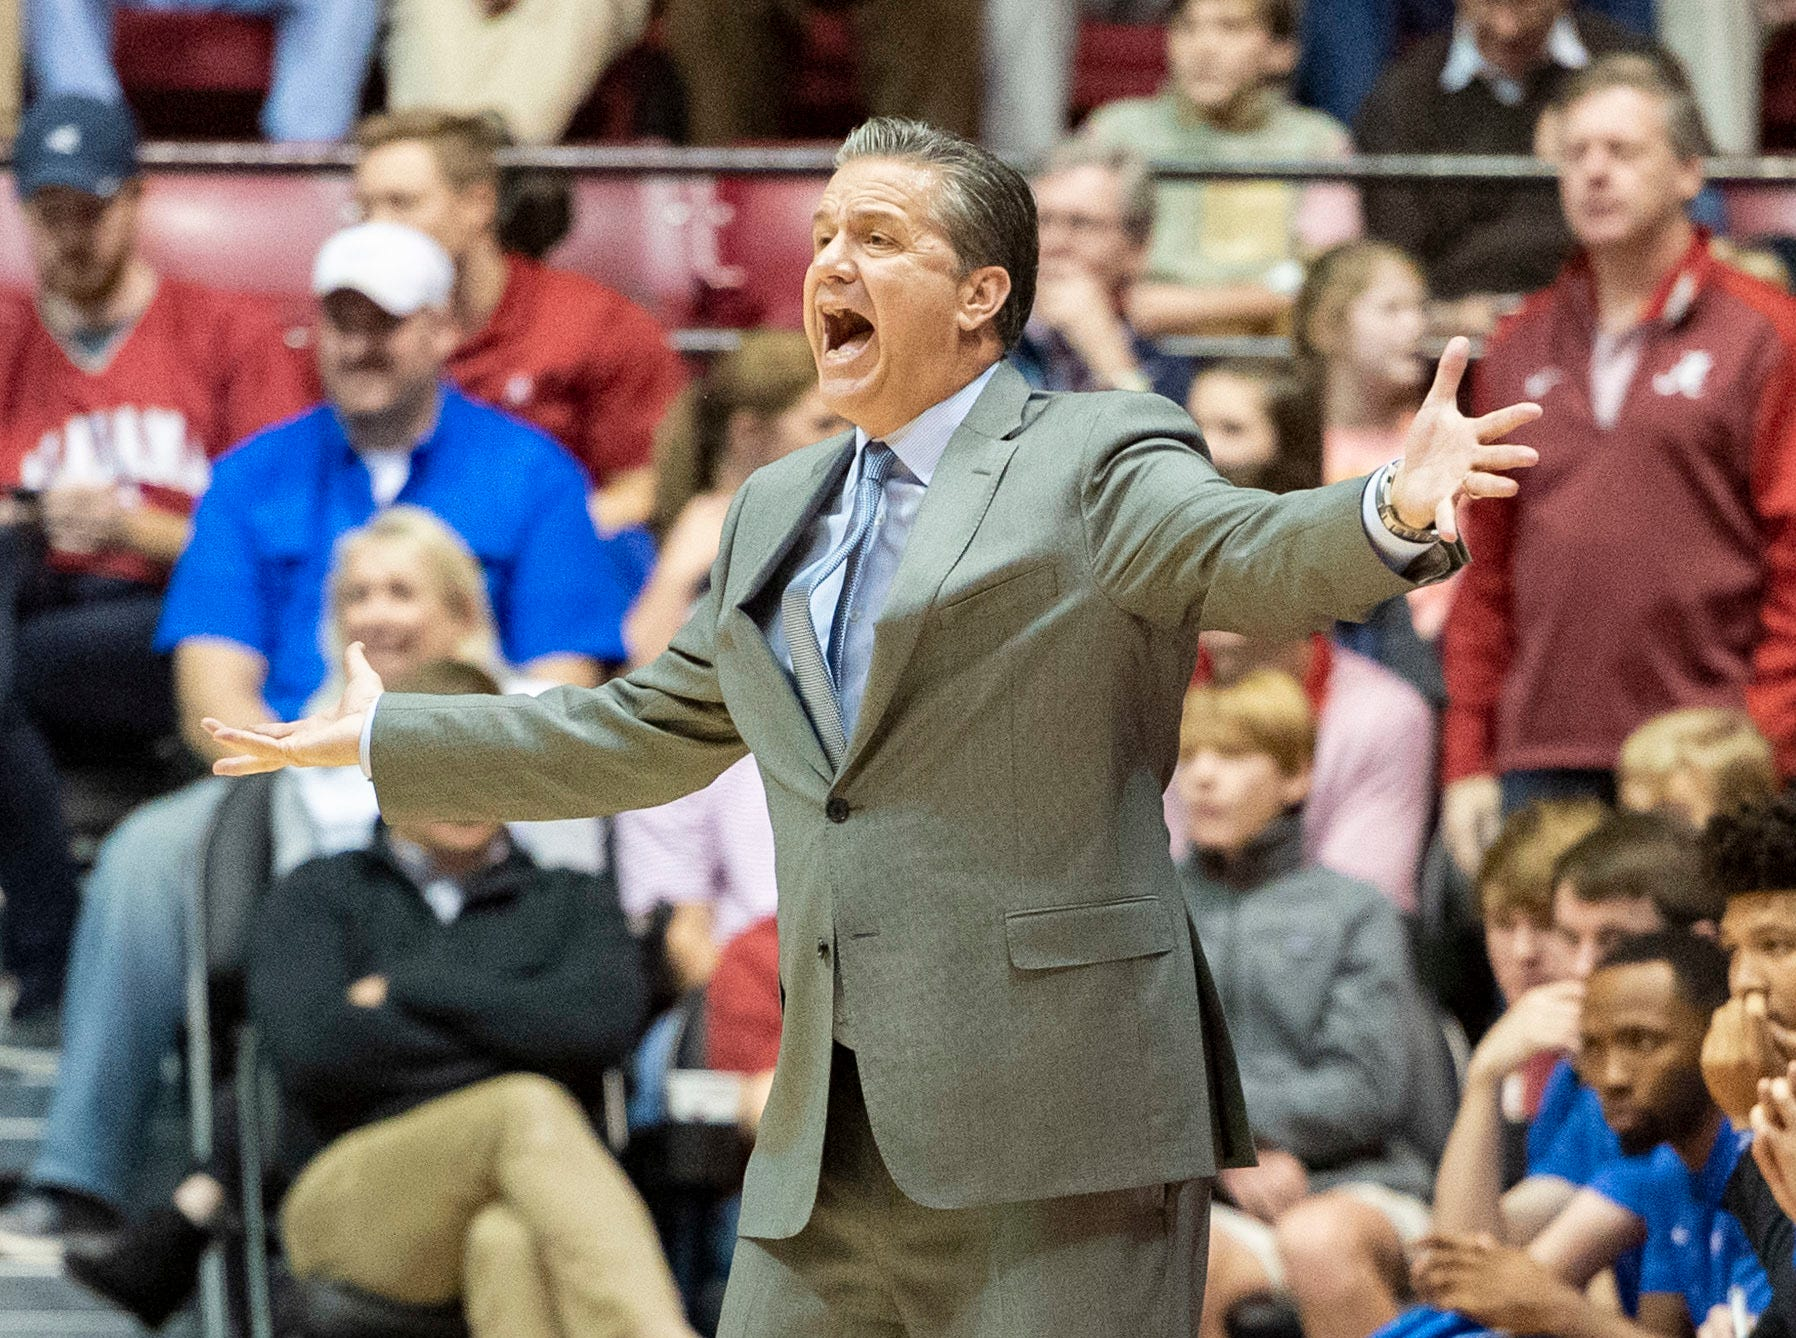 Kentucky head coach John Calipari disputes a call during the first half of an NCAA college basketball game against Alabama, Saturday, Jan. 5, 2019, in Tuscaloosa, Ala.